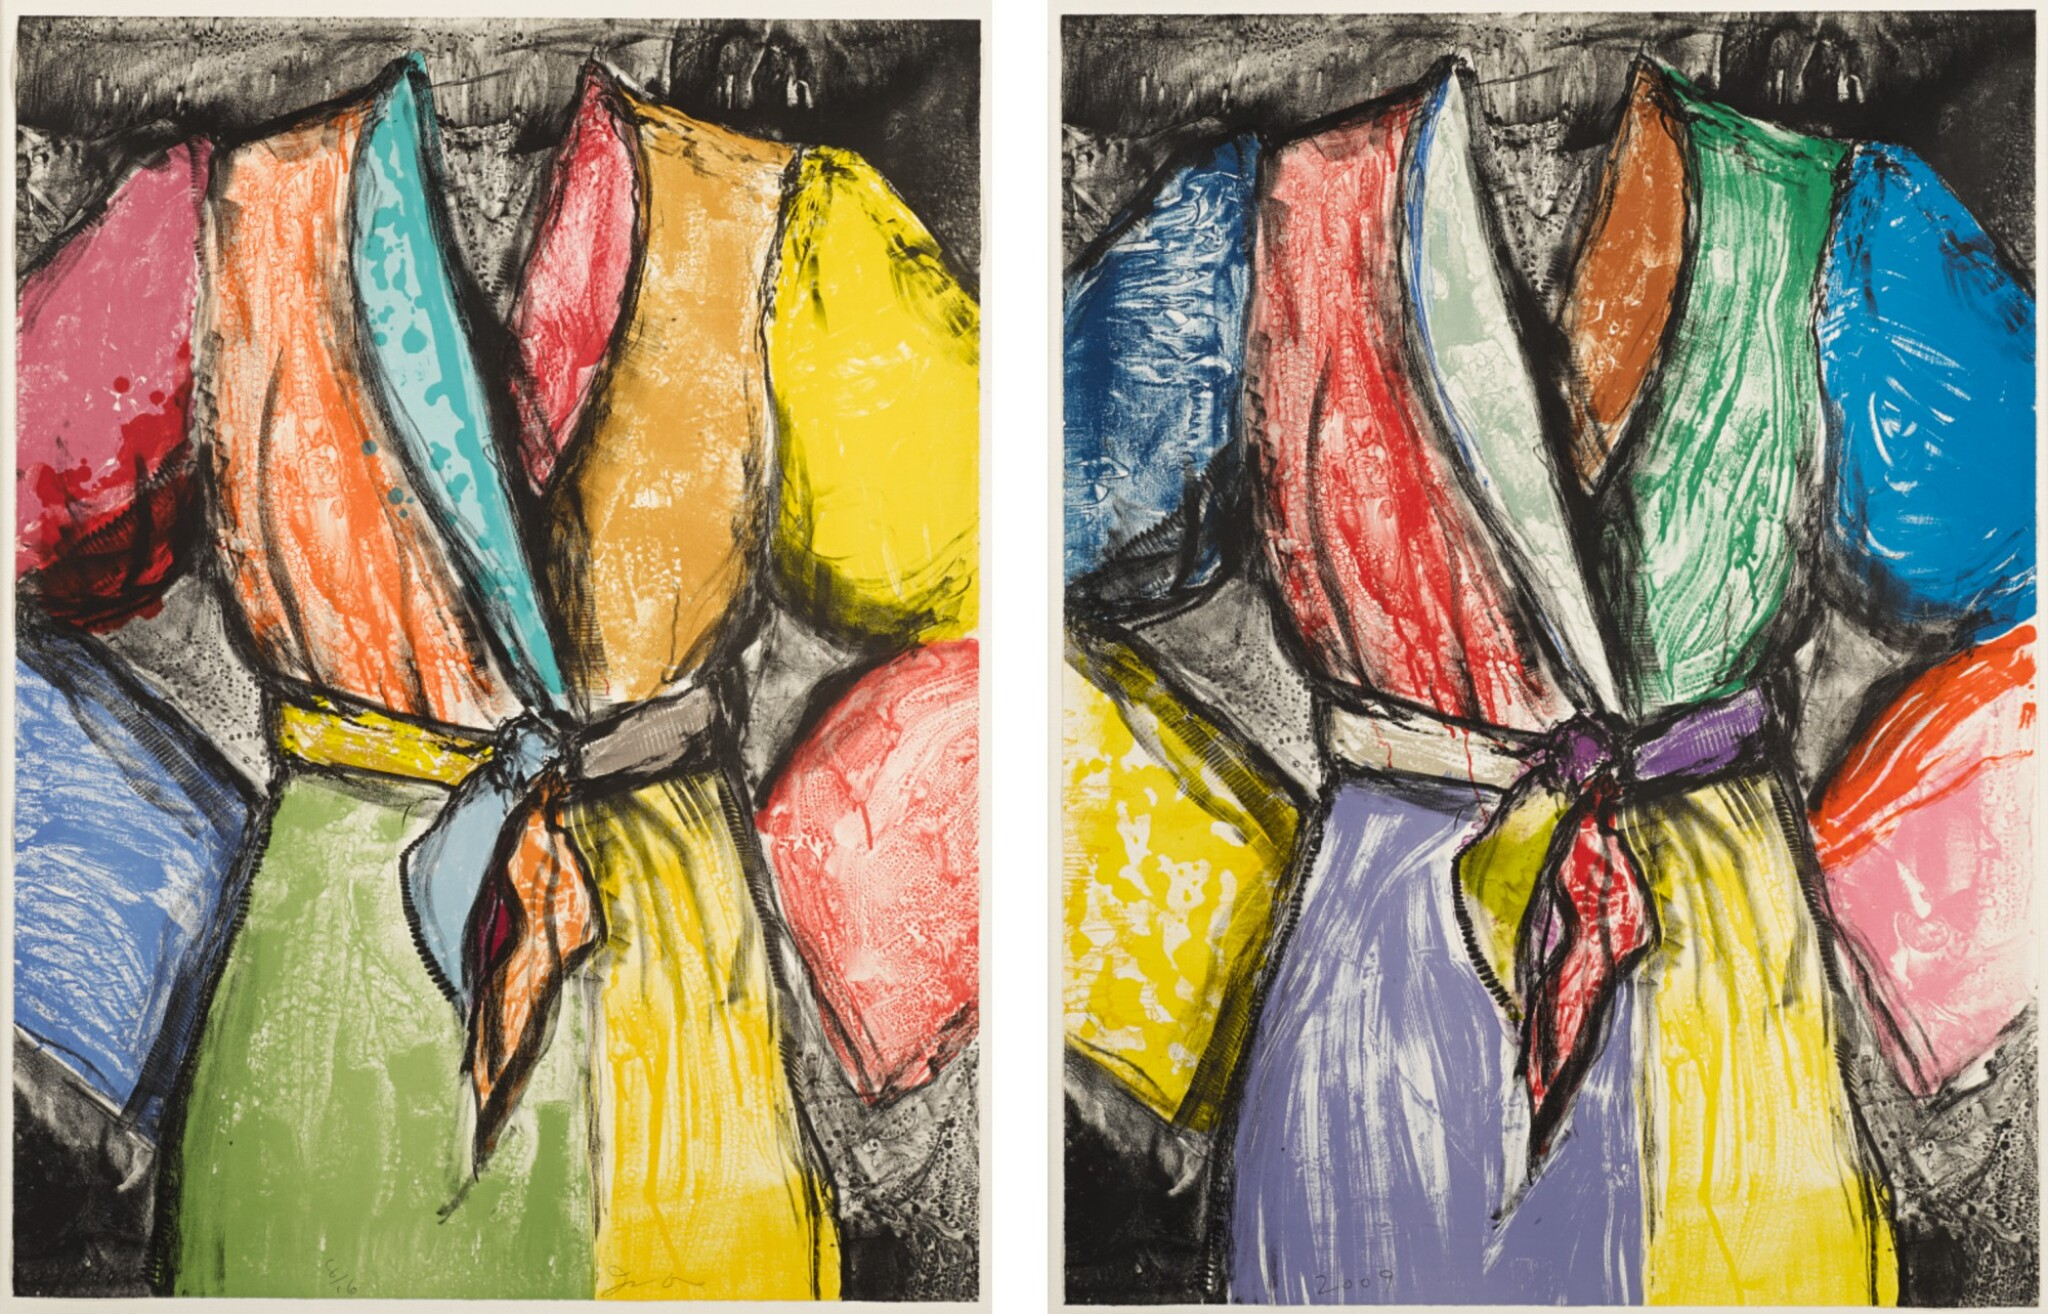 JIM DINE | DOUBLE DOSE OF COLOR